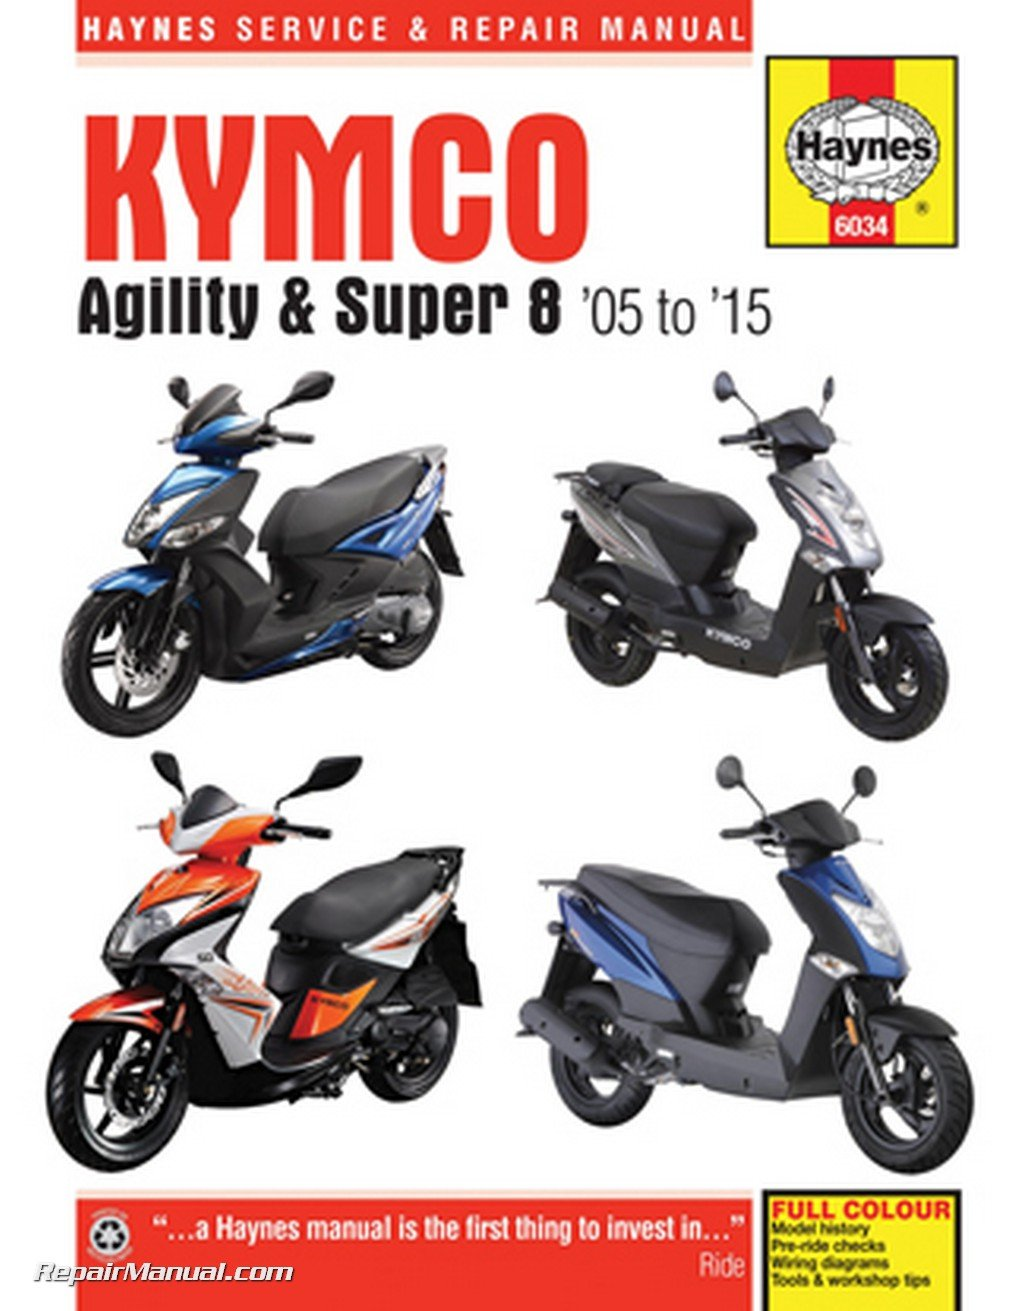 H6034 Kymco 2005-2015 Agility & Super 8 Haynes Scooter Repair Manual by by Publisher